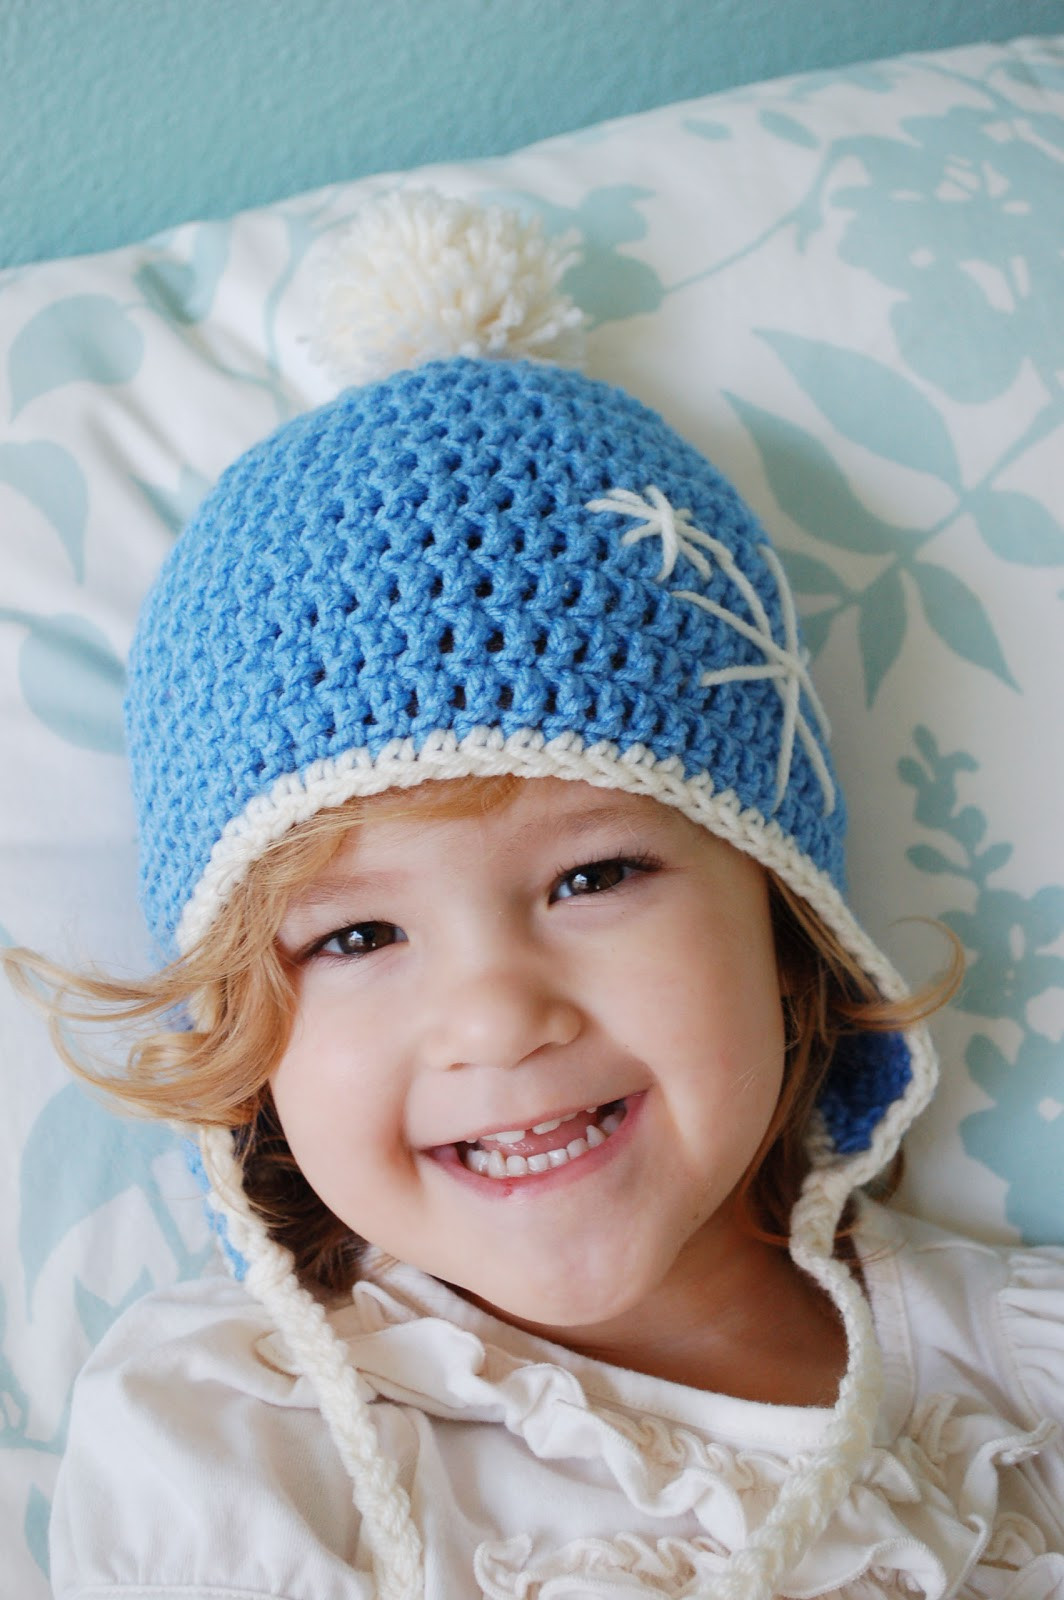 Free Crochet Baby Hats Awesome Free Crochet Patterns for Baby Hats with Ear Flaps Of Attractive 48 Photos Free Crochet Baby Hats